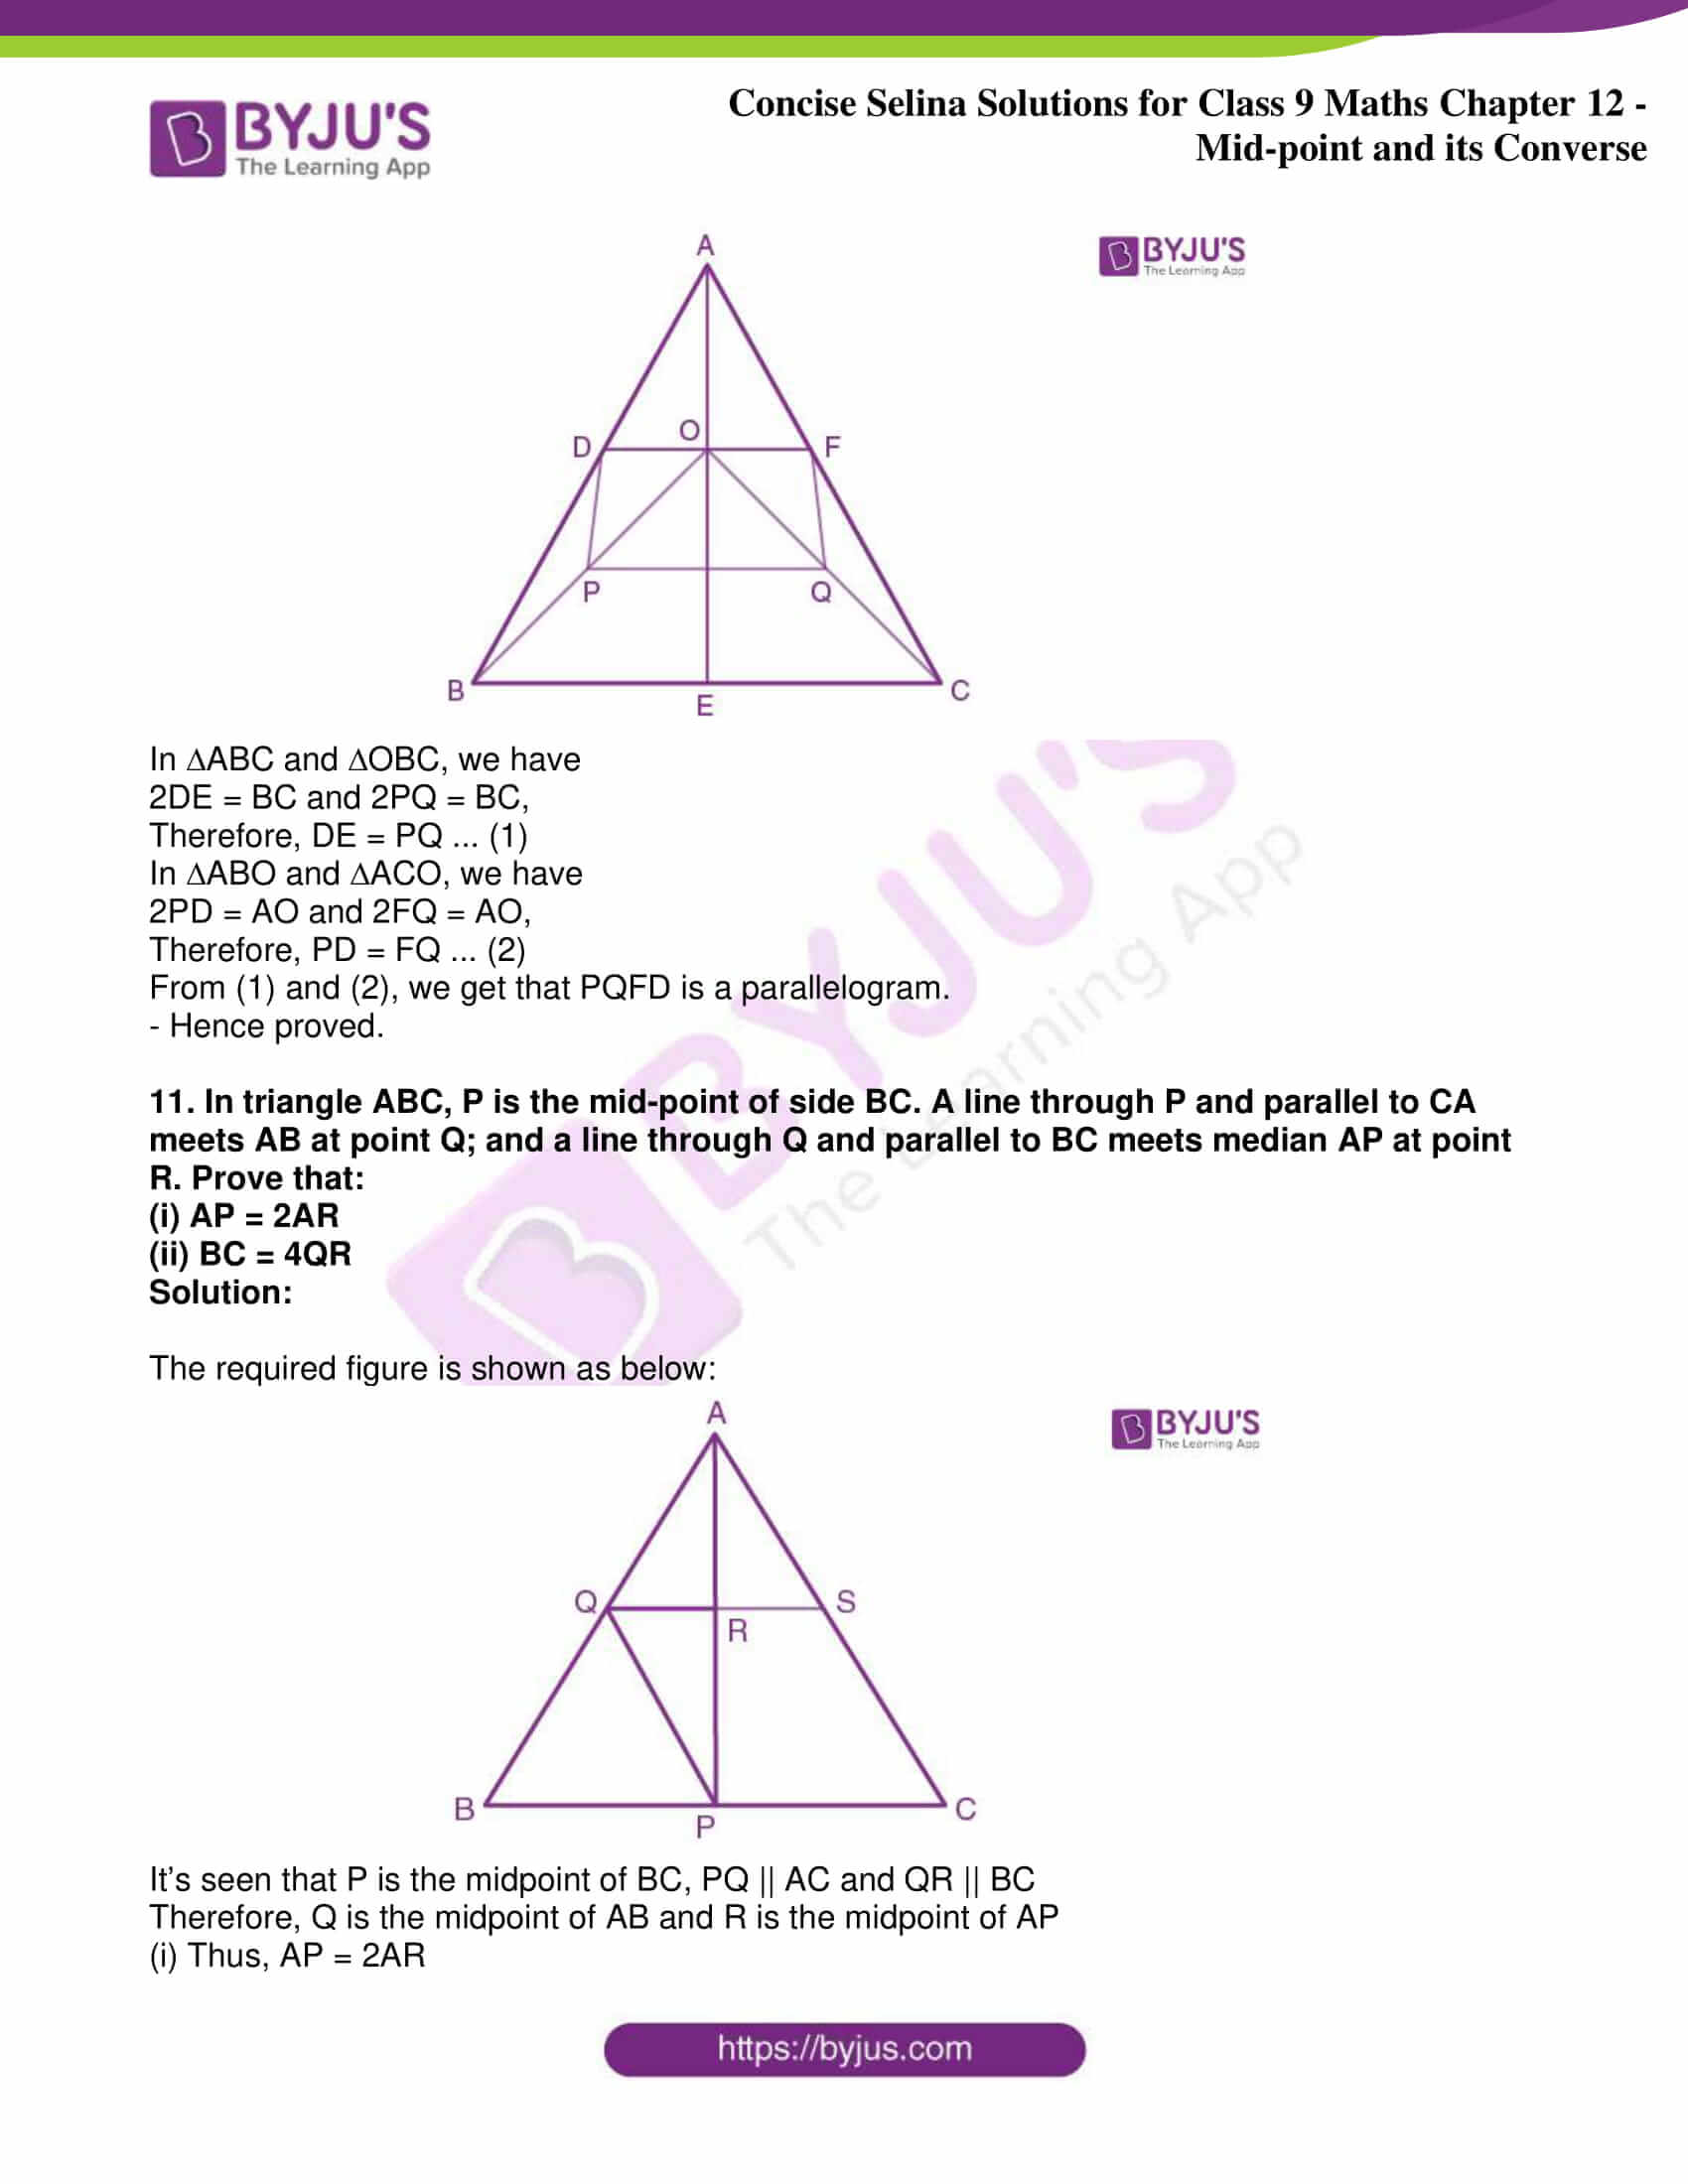 icse class 9 jun8 maths selina solutions chapter 12 midpoint and its converse 09